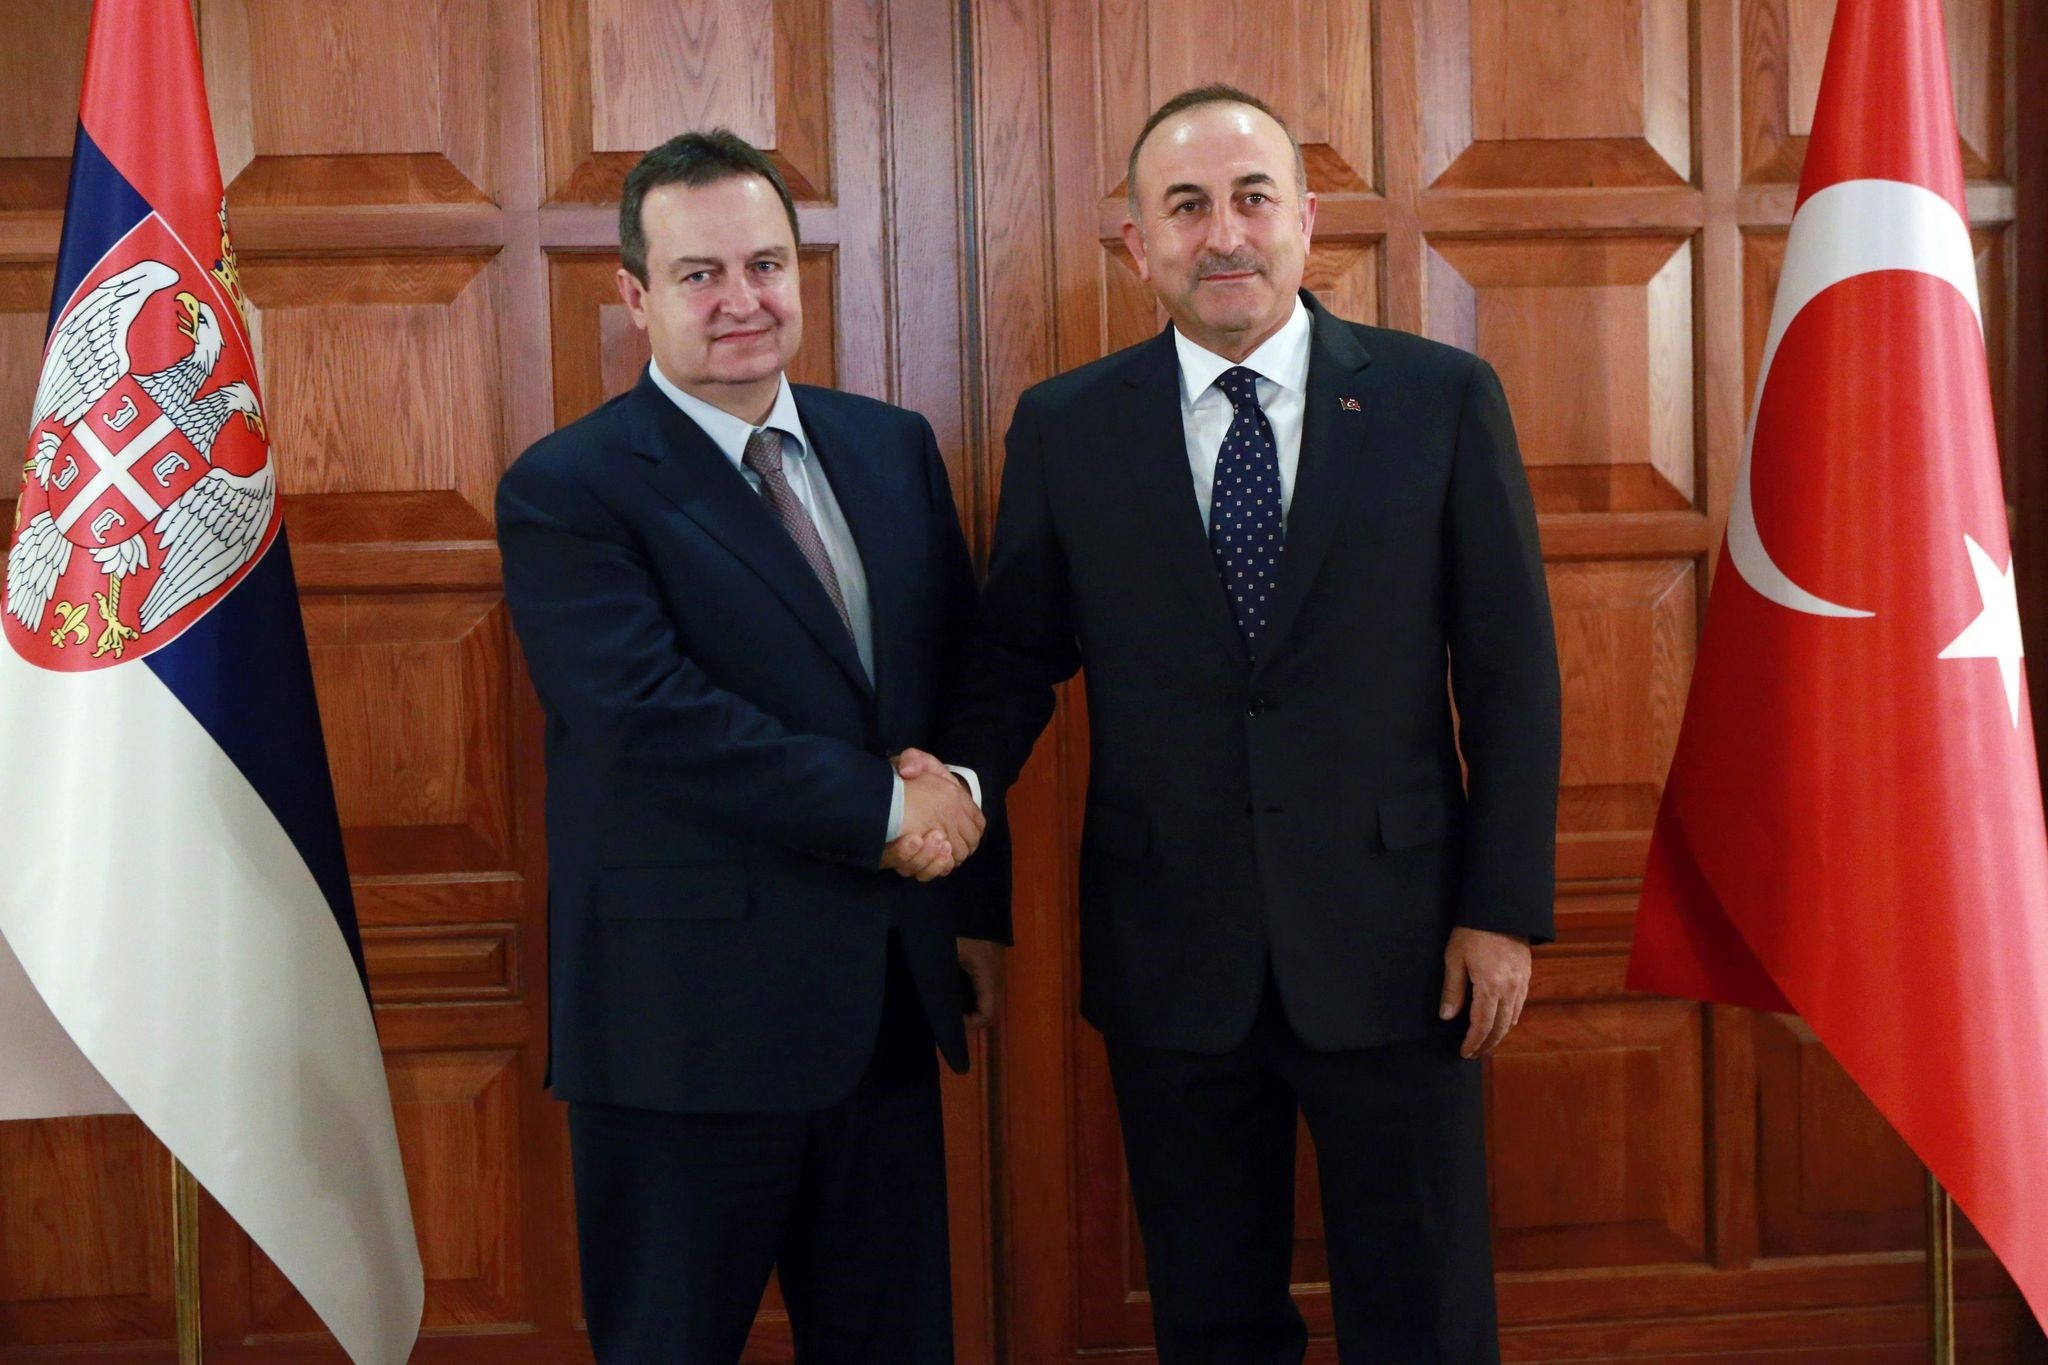 Foreign Minister u00c7avuu015fou011flu (R) shakes hands with Serbian counterpart Dacic in Ankara, October 5, 2016. (AFP Photo)